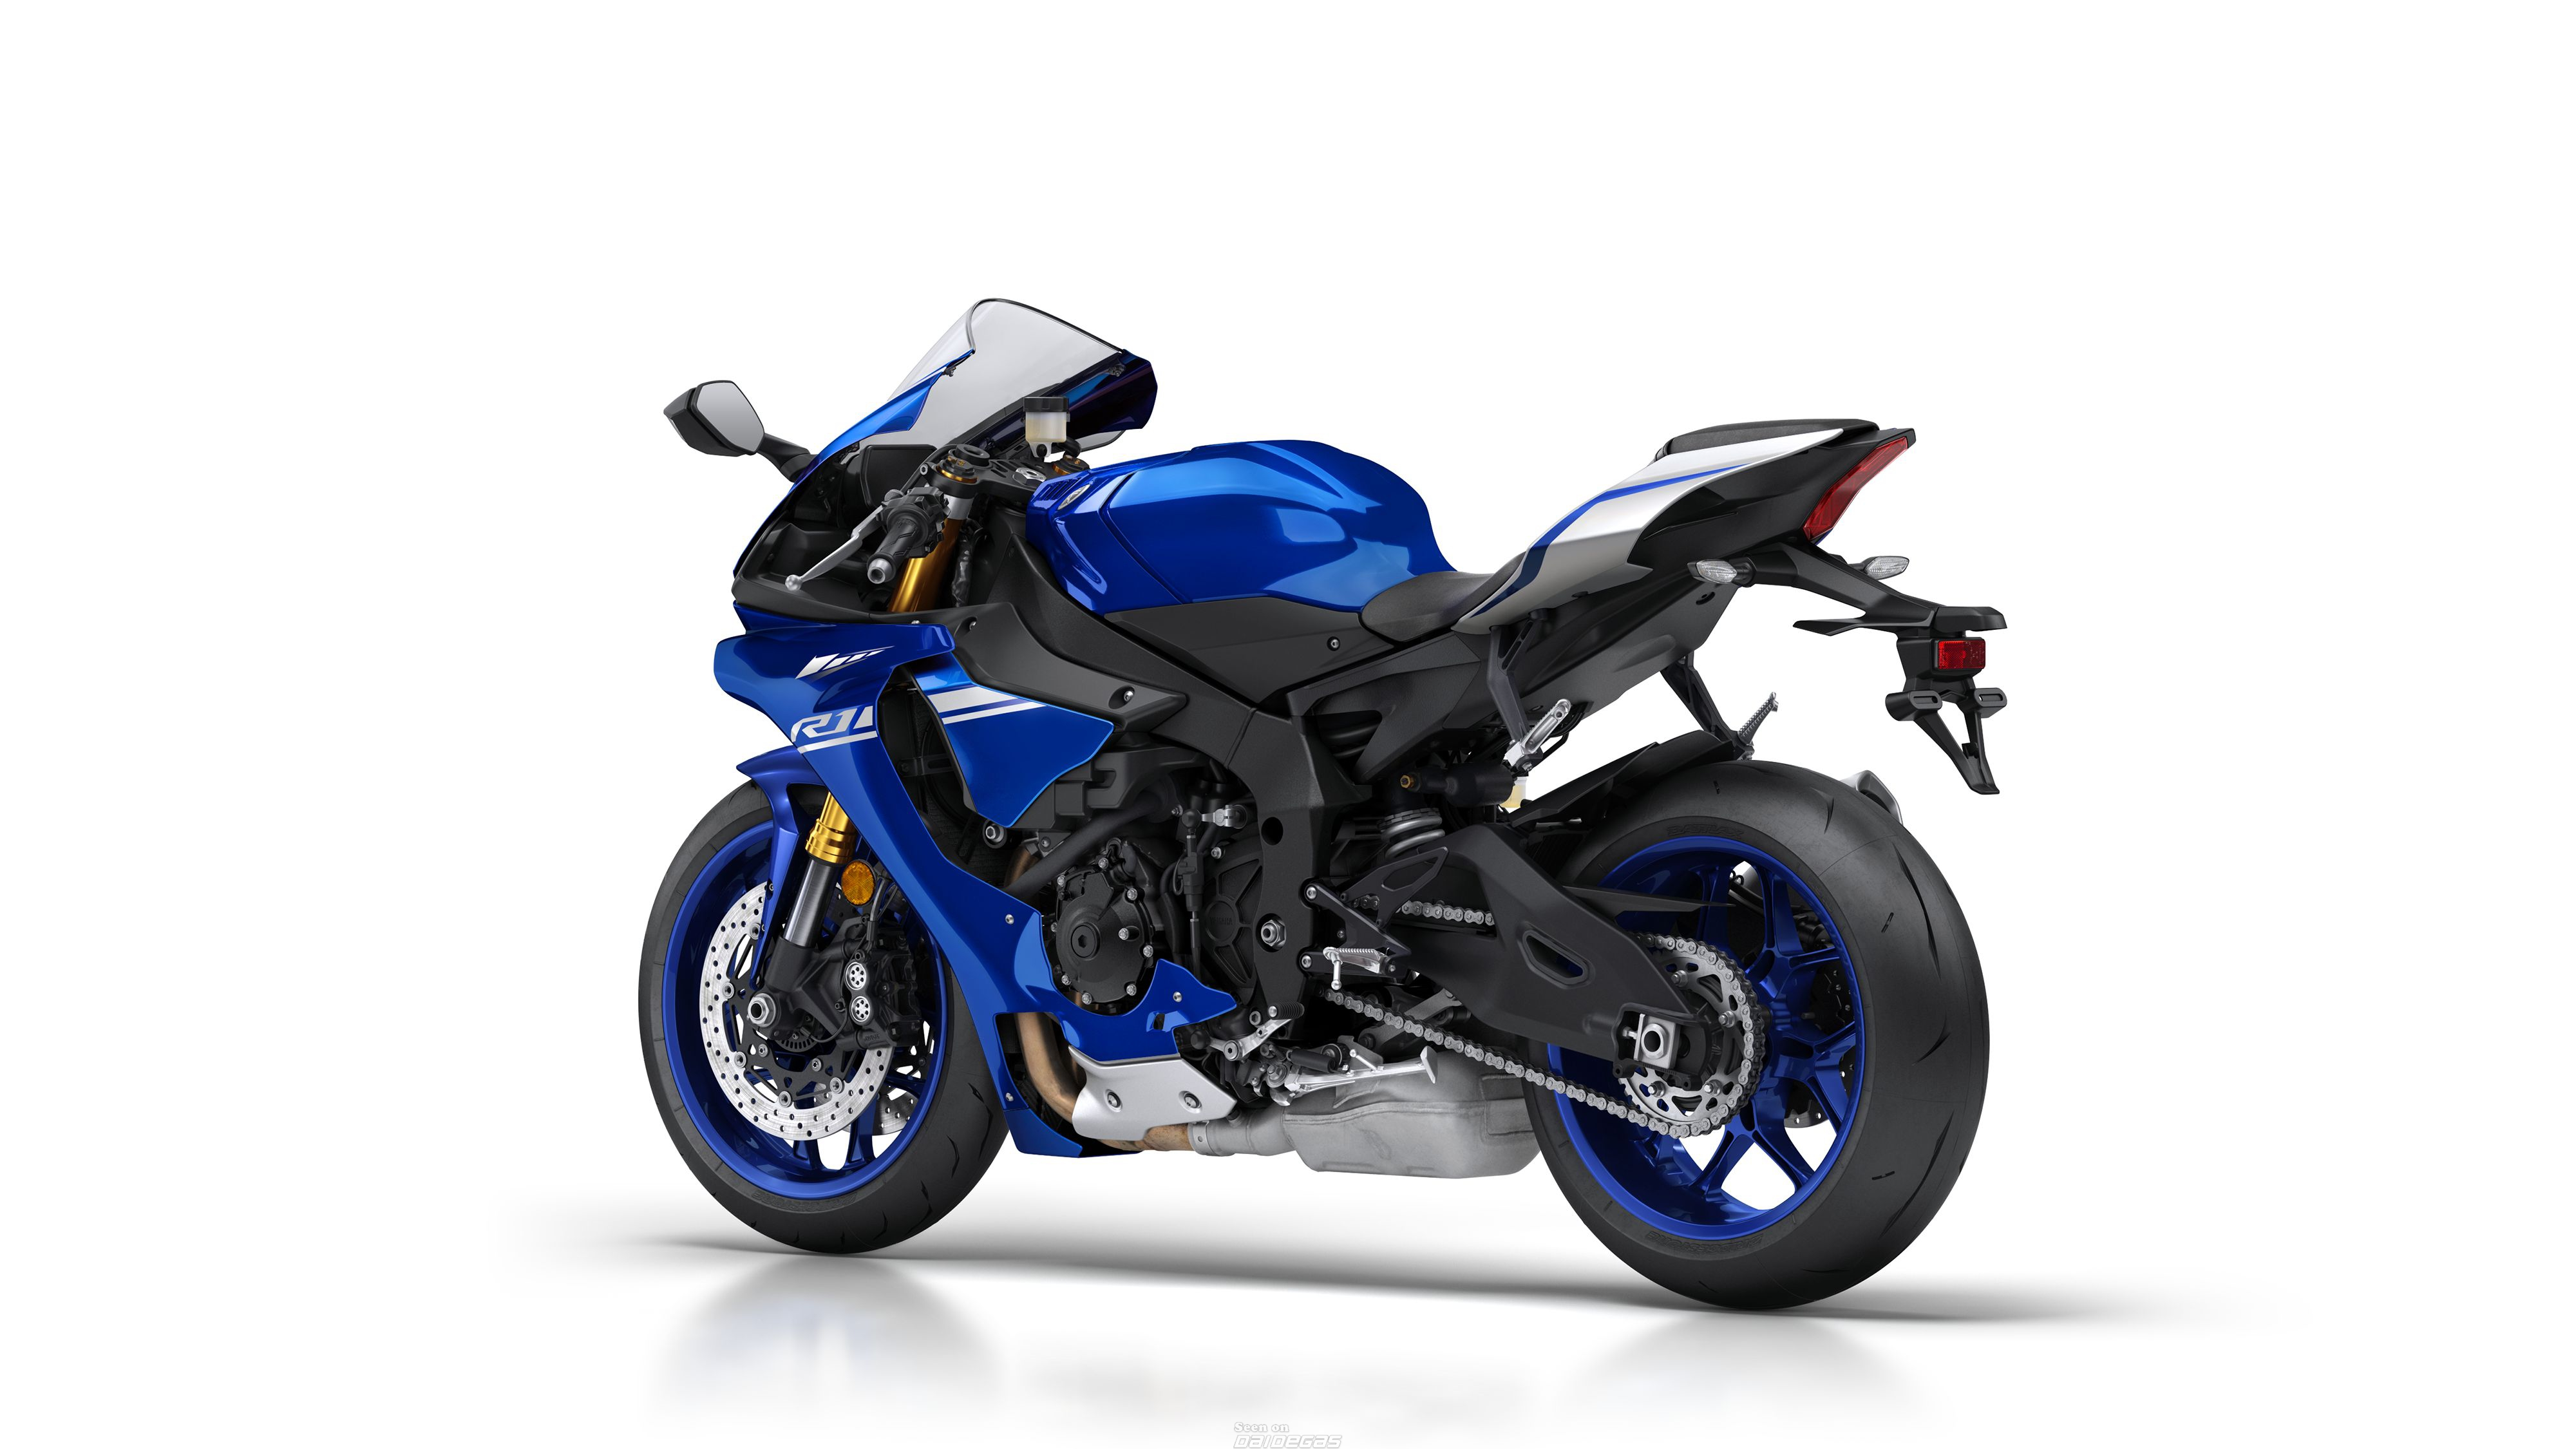 2017 yzf r1 released today yamaha r1 forum yzf r1 forums. Black Bedroom Furniture Sets. Home Design Ideas